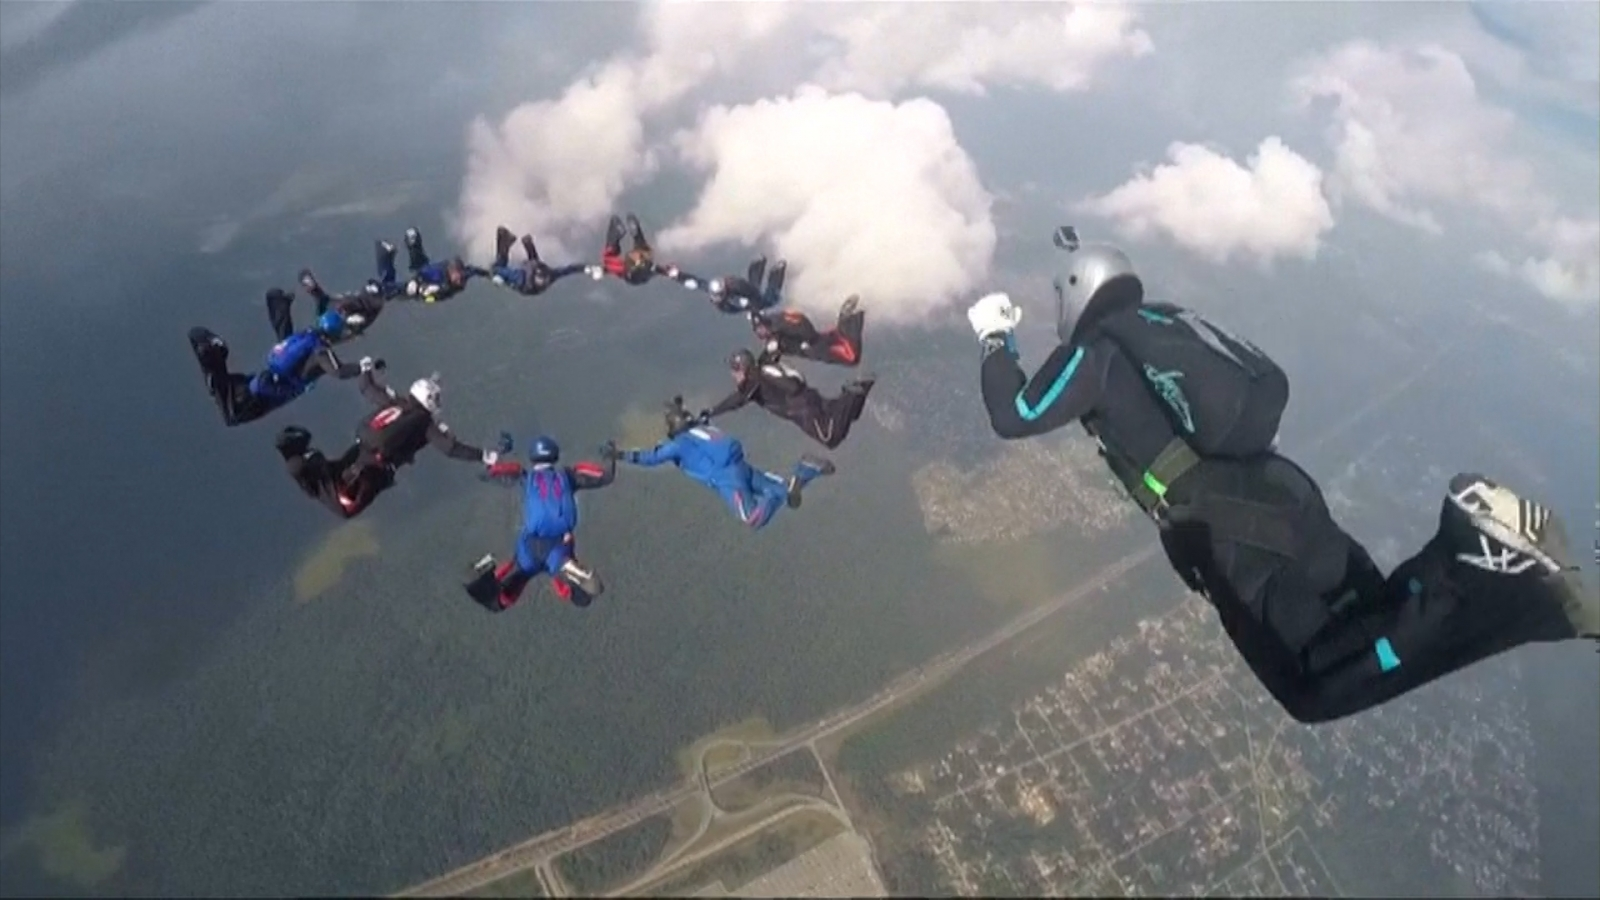 World parachuting championships conclude